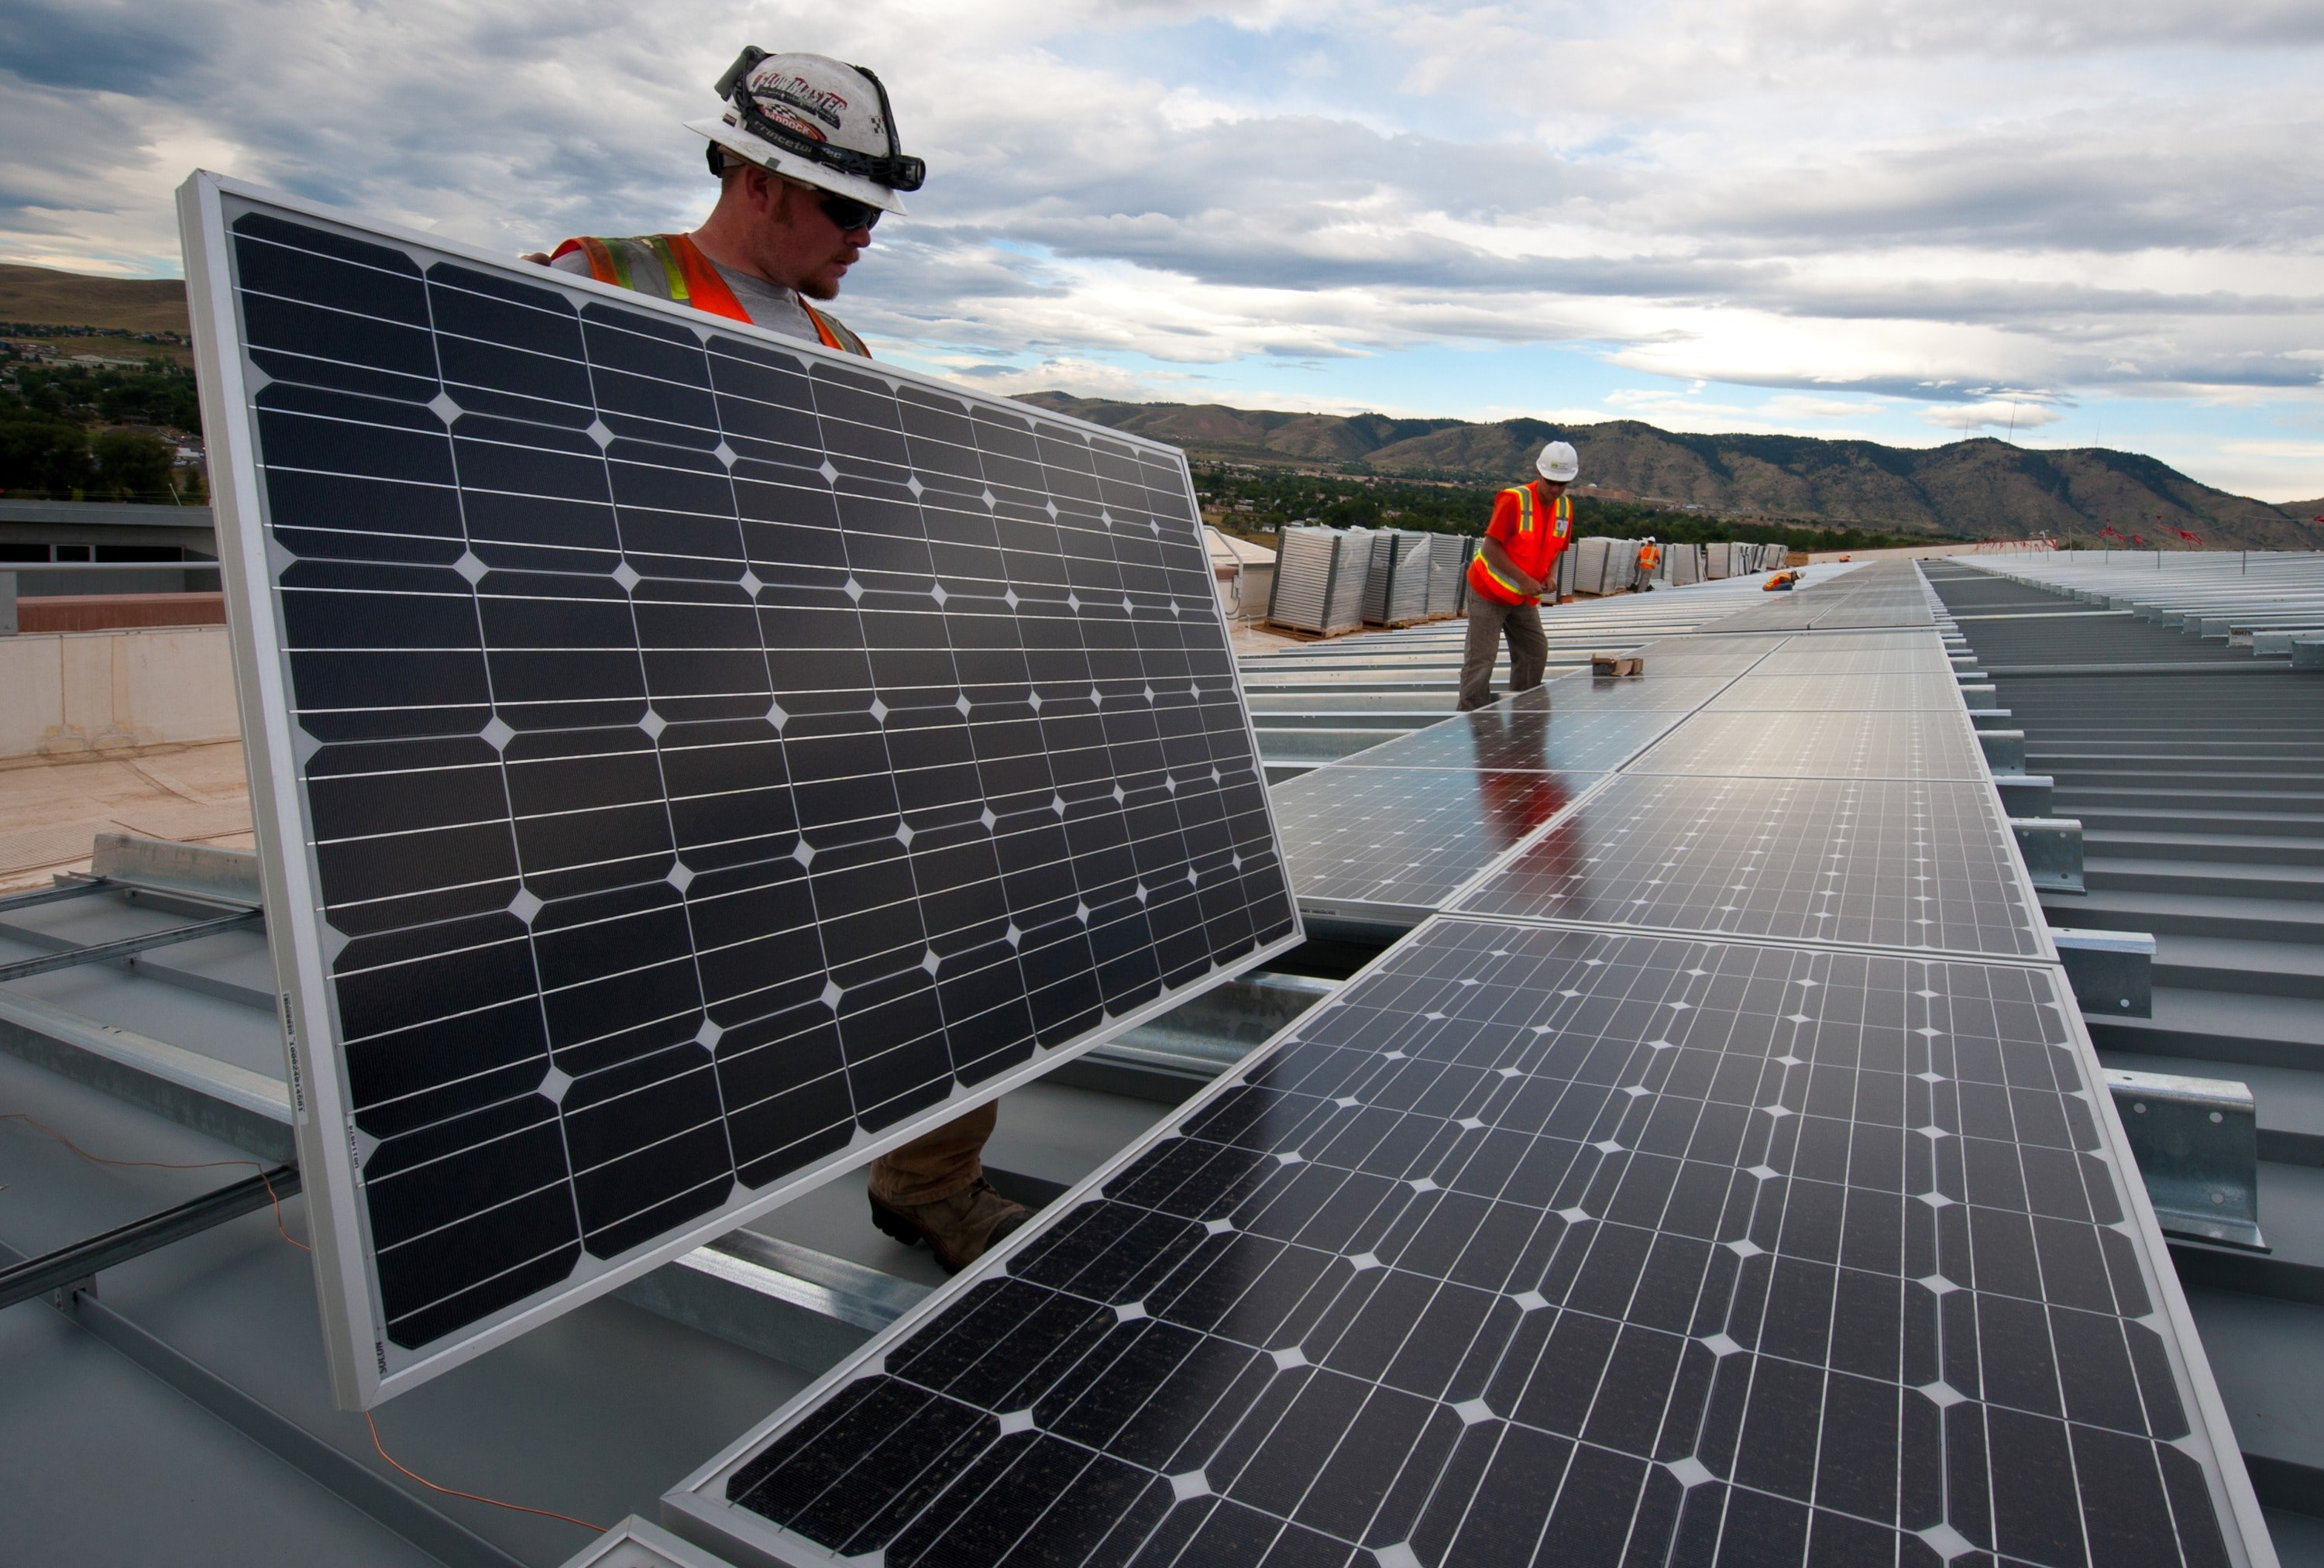 Installation of large scale solar energy projects